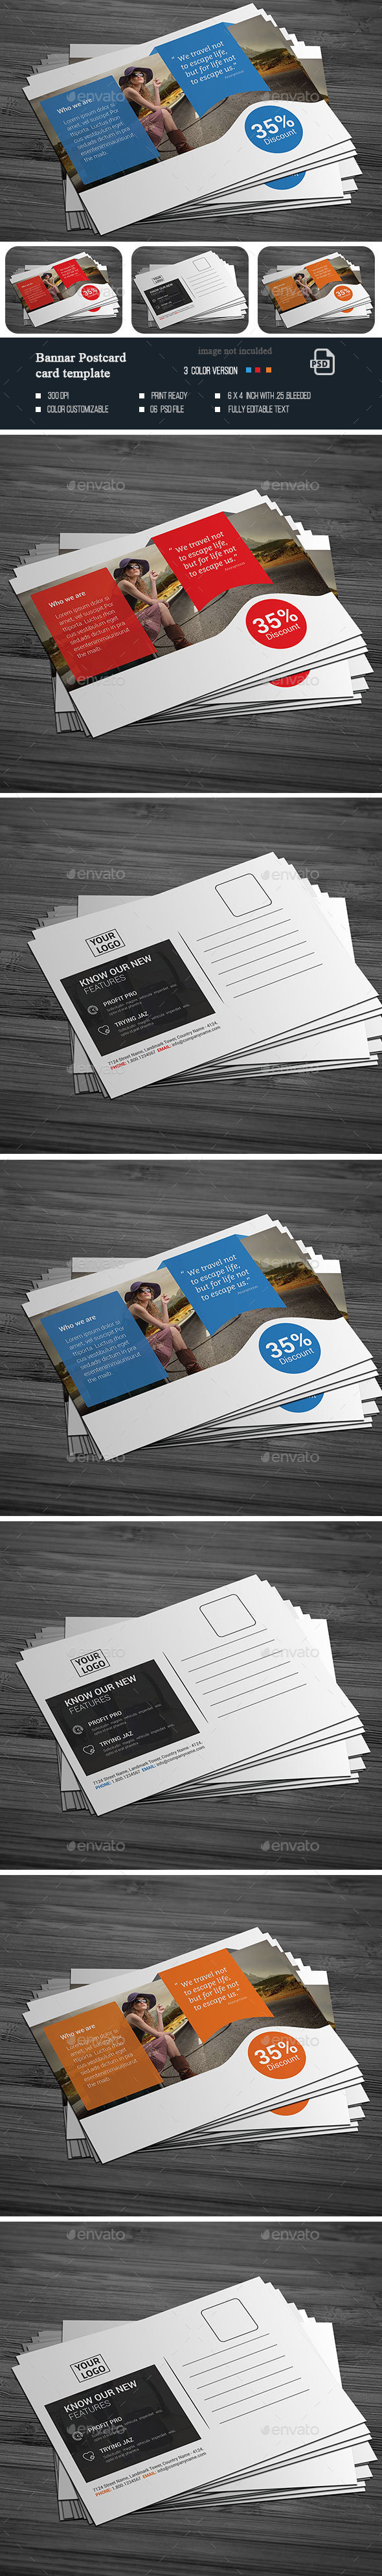 Banner Post card  - Cards & Invites Print Templates